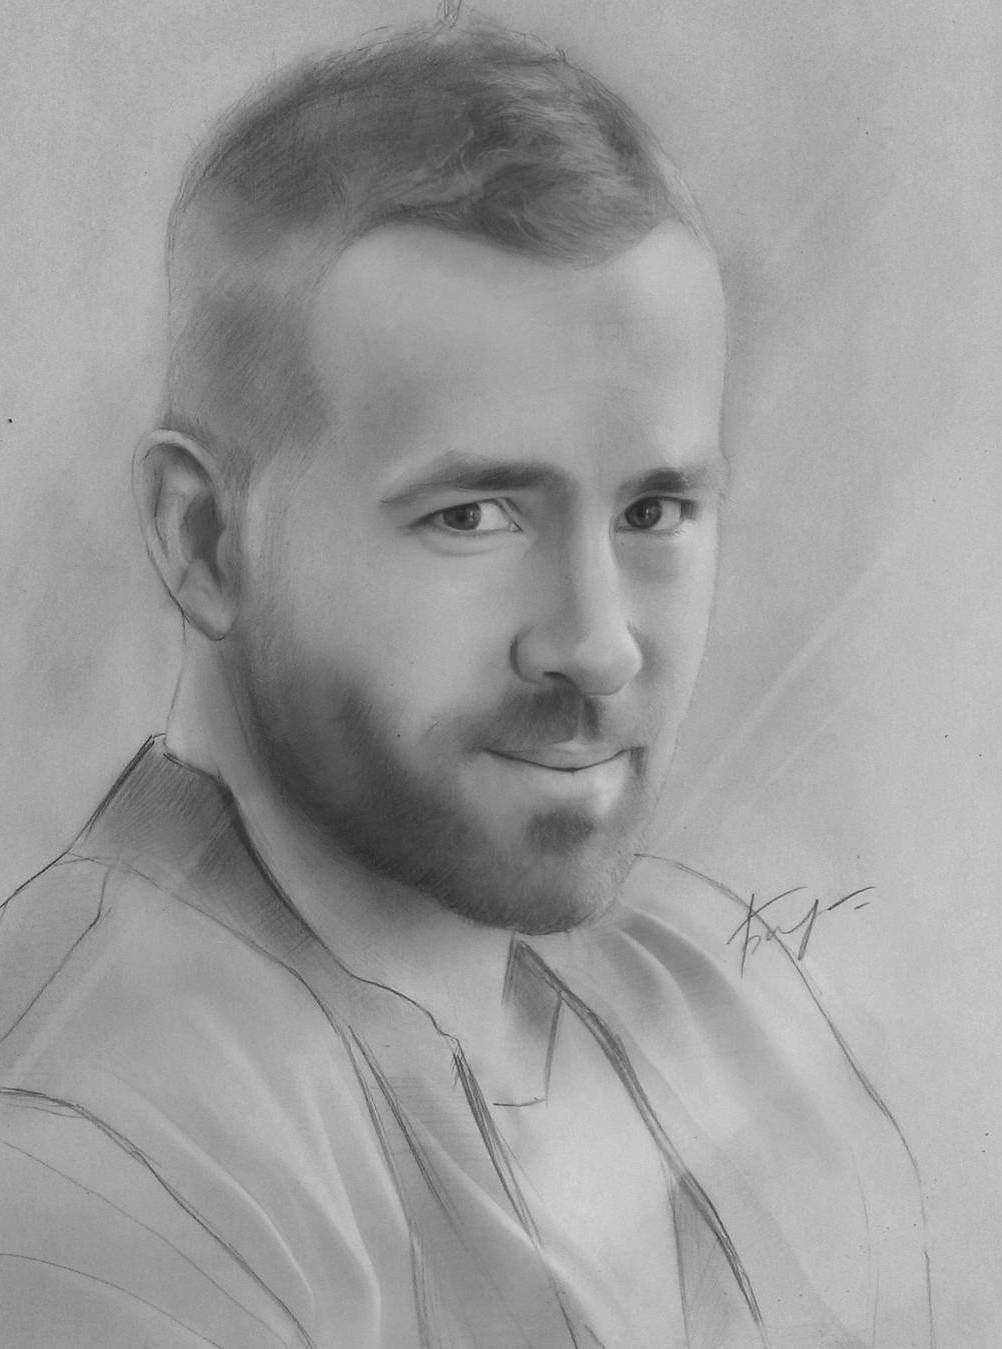 man portrait pencil drawings by vita biryulina